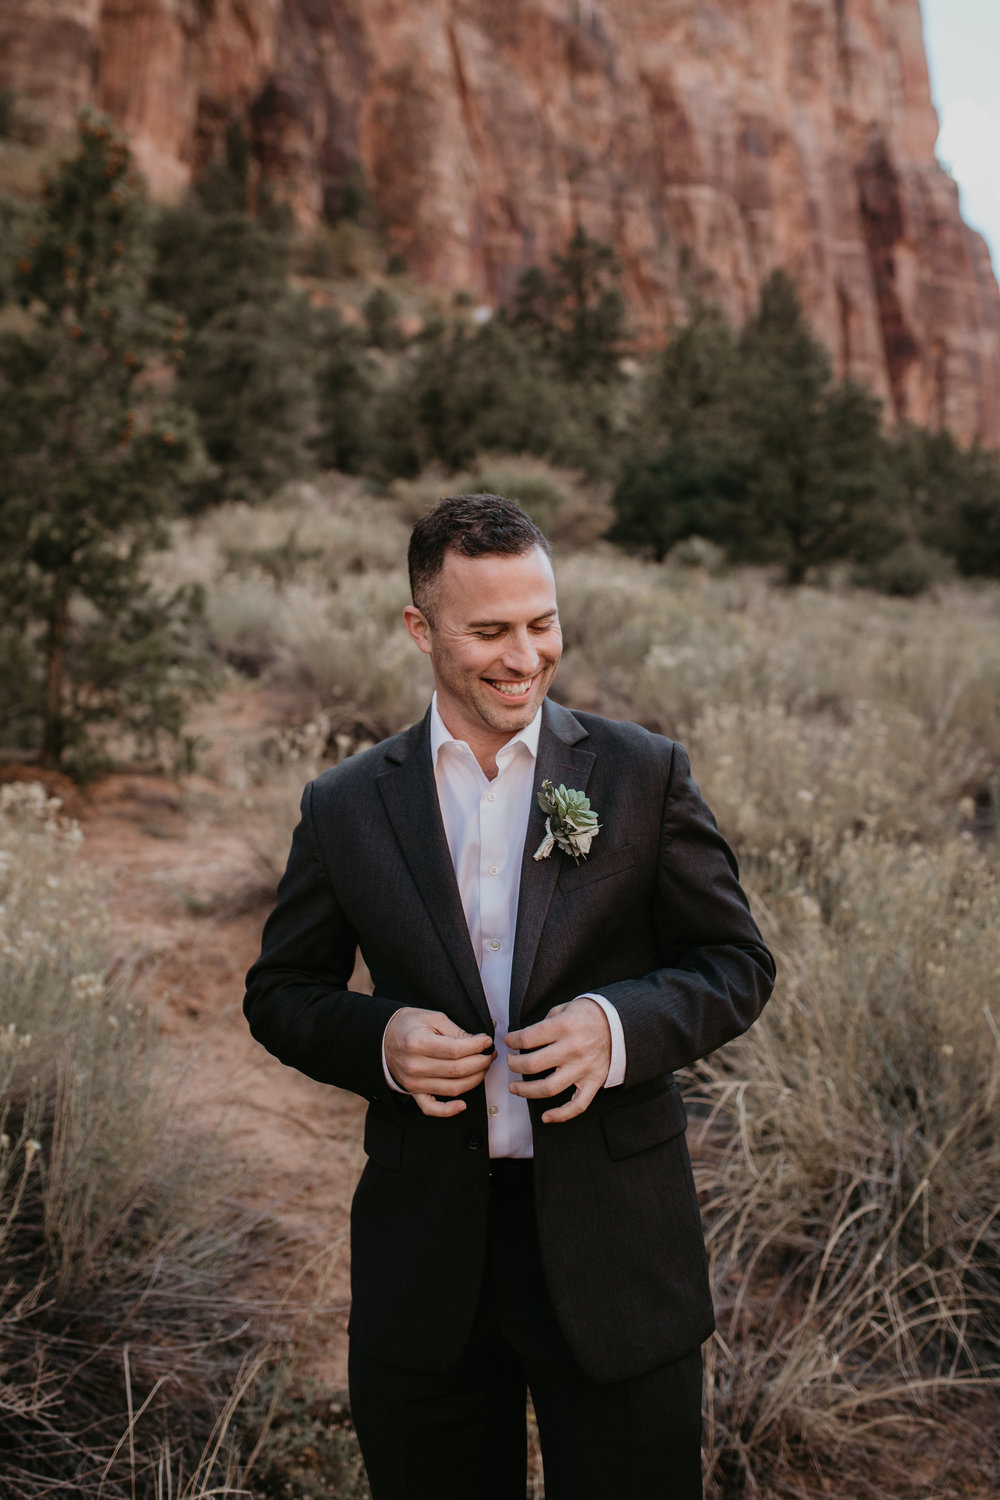 nicole-daacke-photography-zion-national-park-elopement-photographer-canyon-overlook-trail-elope-hiking-adventure-wedding-photos-fall-utah-red-rock-canyon-stgeorge-eloping-photographer-17.jpg